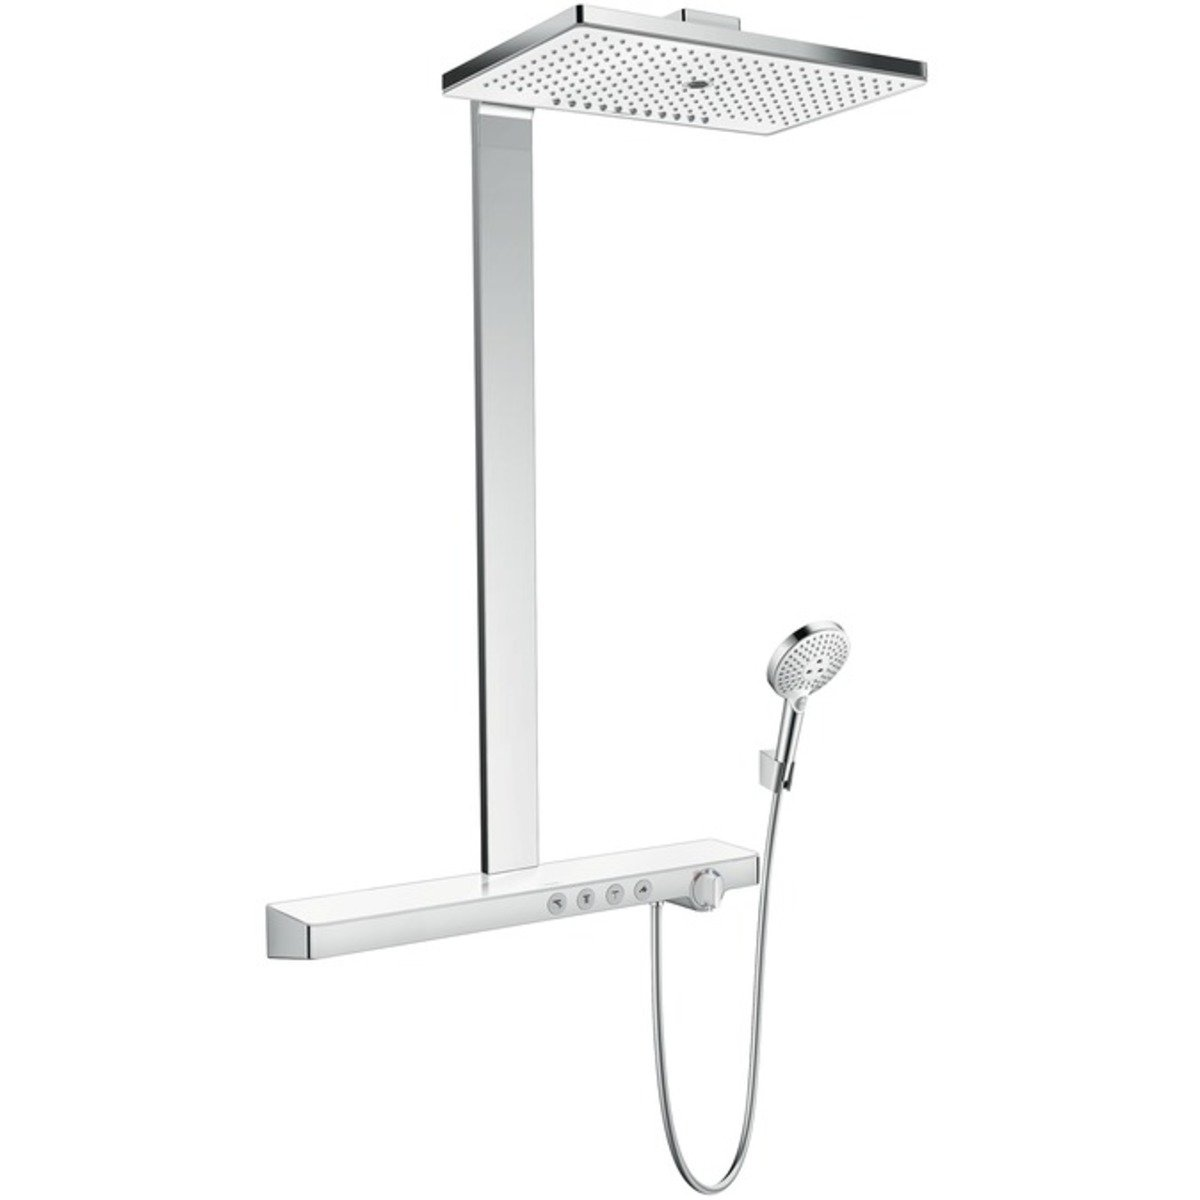 hansgrohe rainmaker select 460 colonne de douche ecosmart avec showertablet select 700 robinet. Black Bedroom Furniture Sets. Home Design Ideas